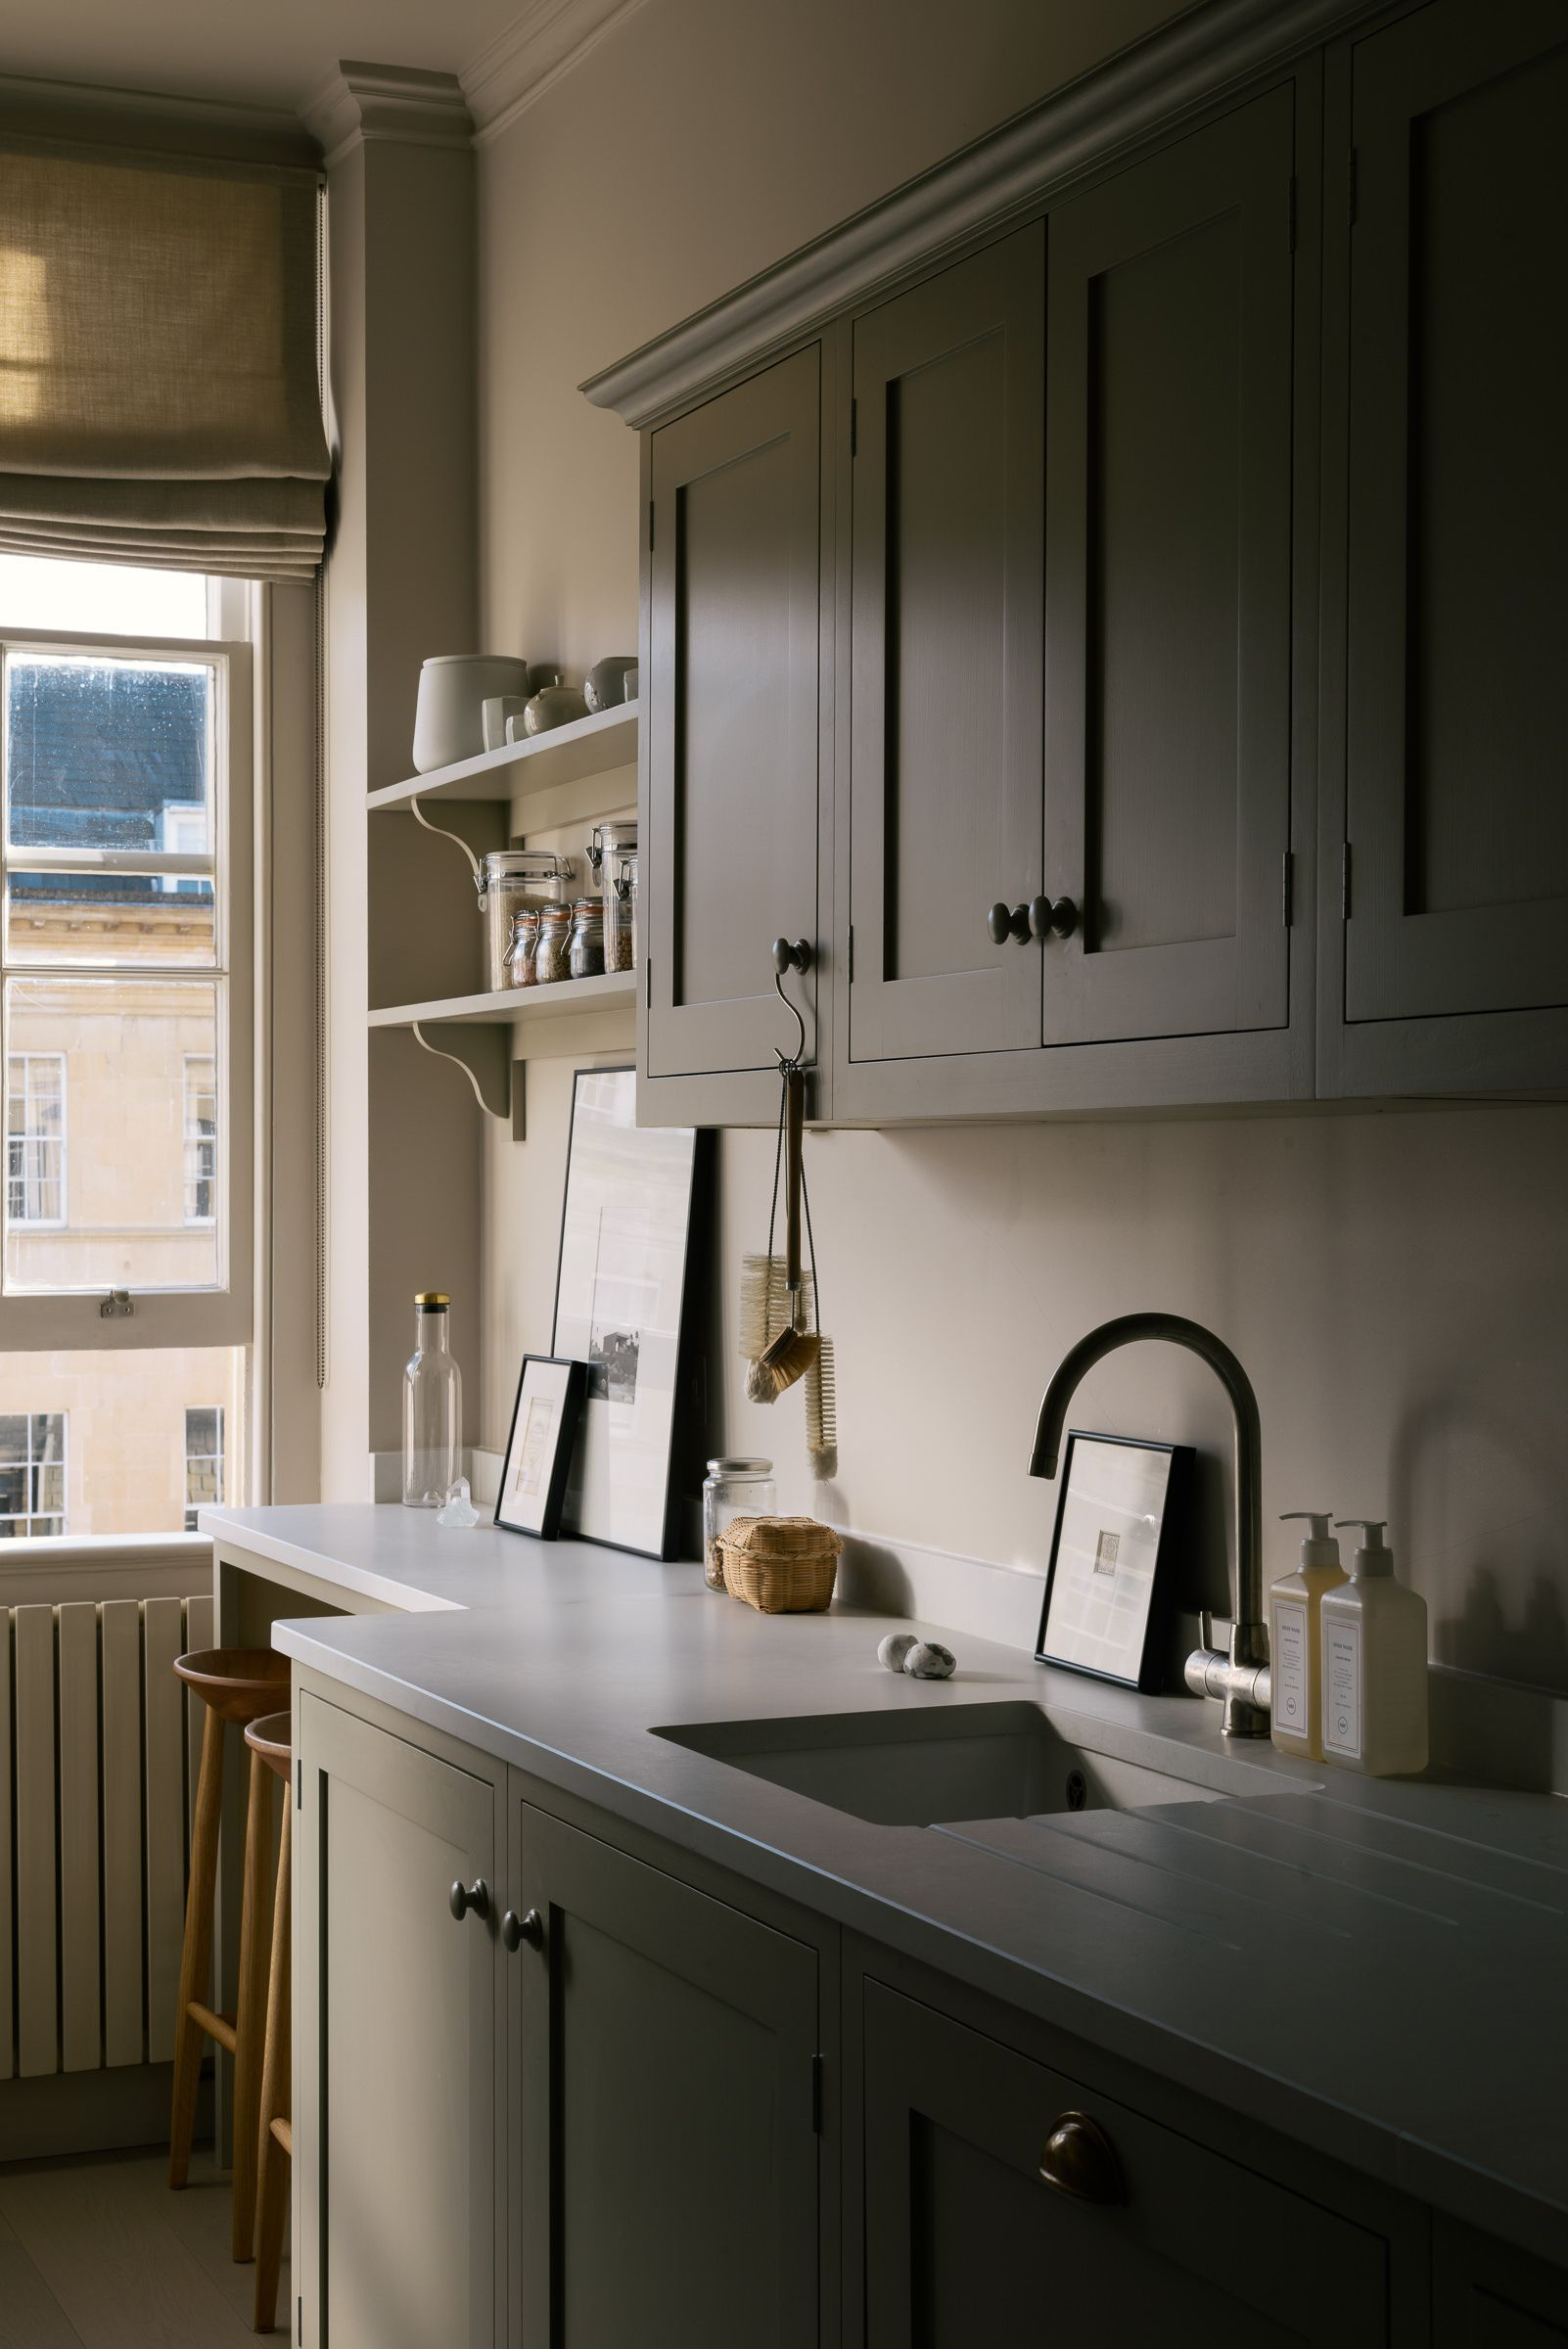 Small Doesn T Have To Be Boring This Minuscule Country House Kitchen Is Compact Charming And E Interior Design Kitchen Kitchen Interior Small Galley Kitchens